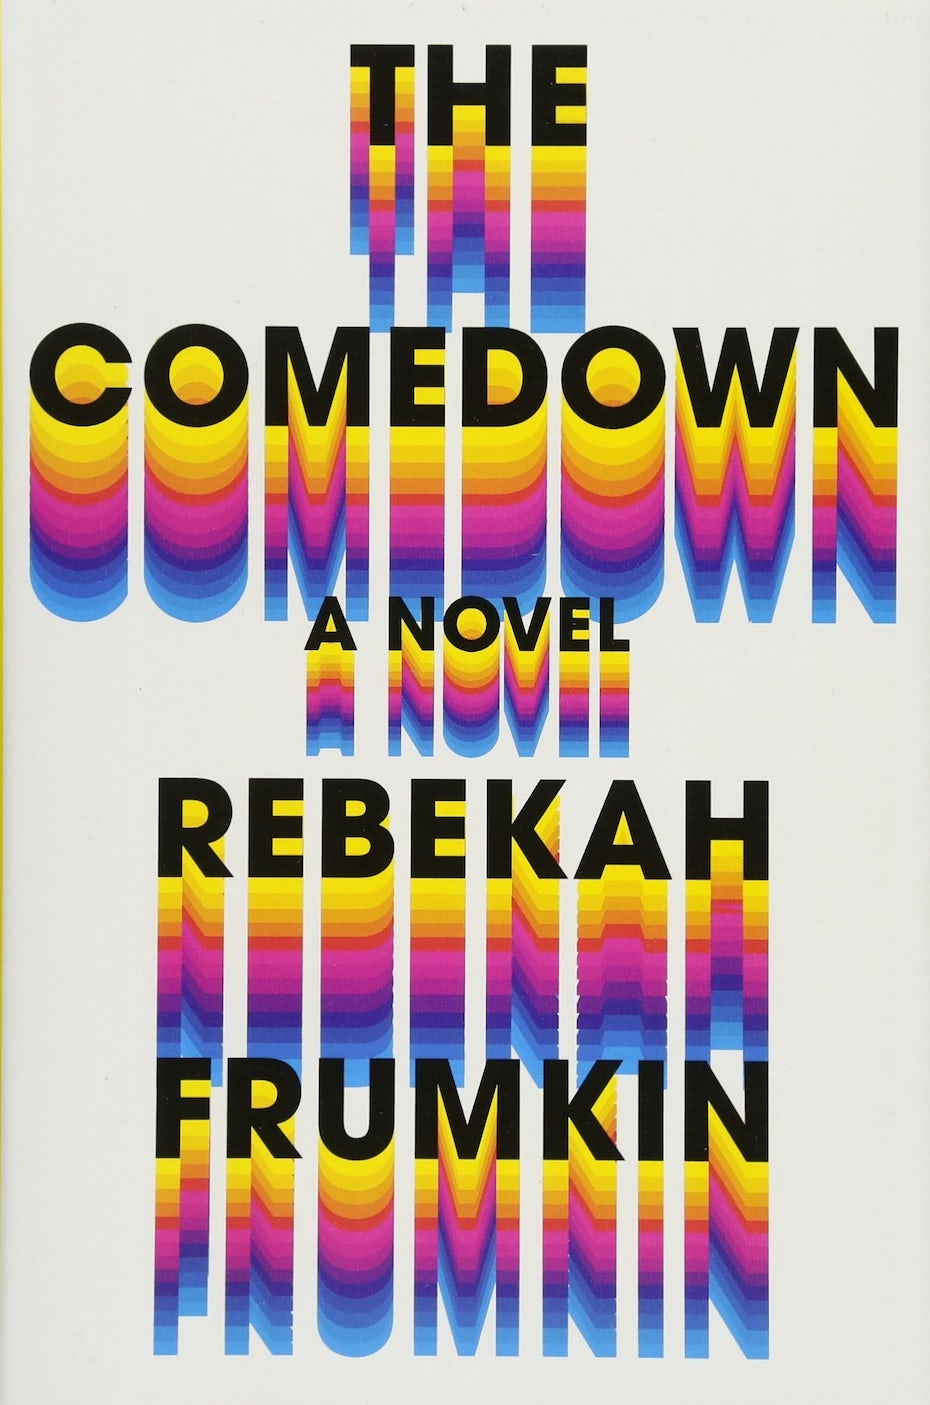 book cover trends 2020 example with 70s rainbow effect on letters